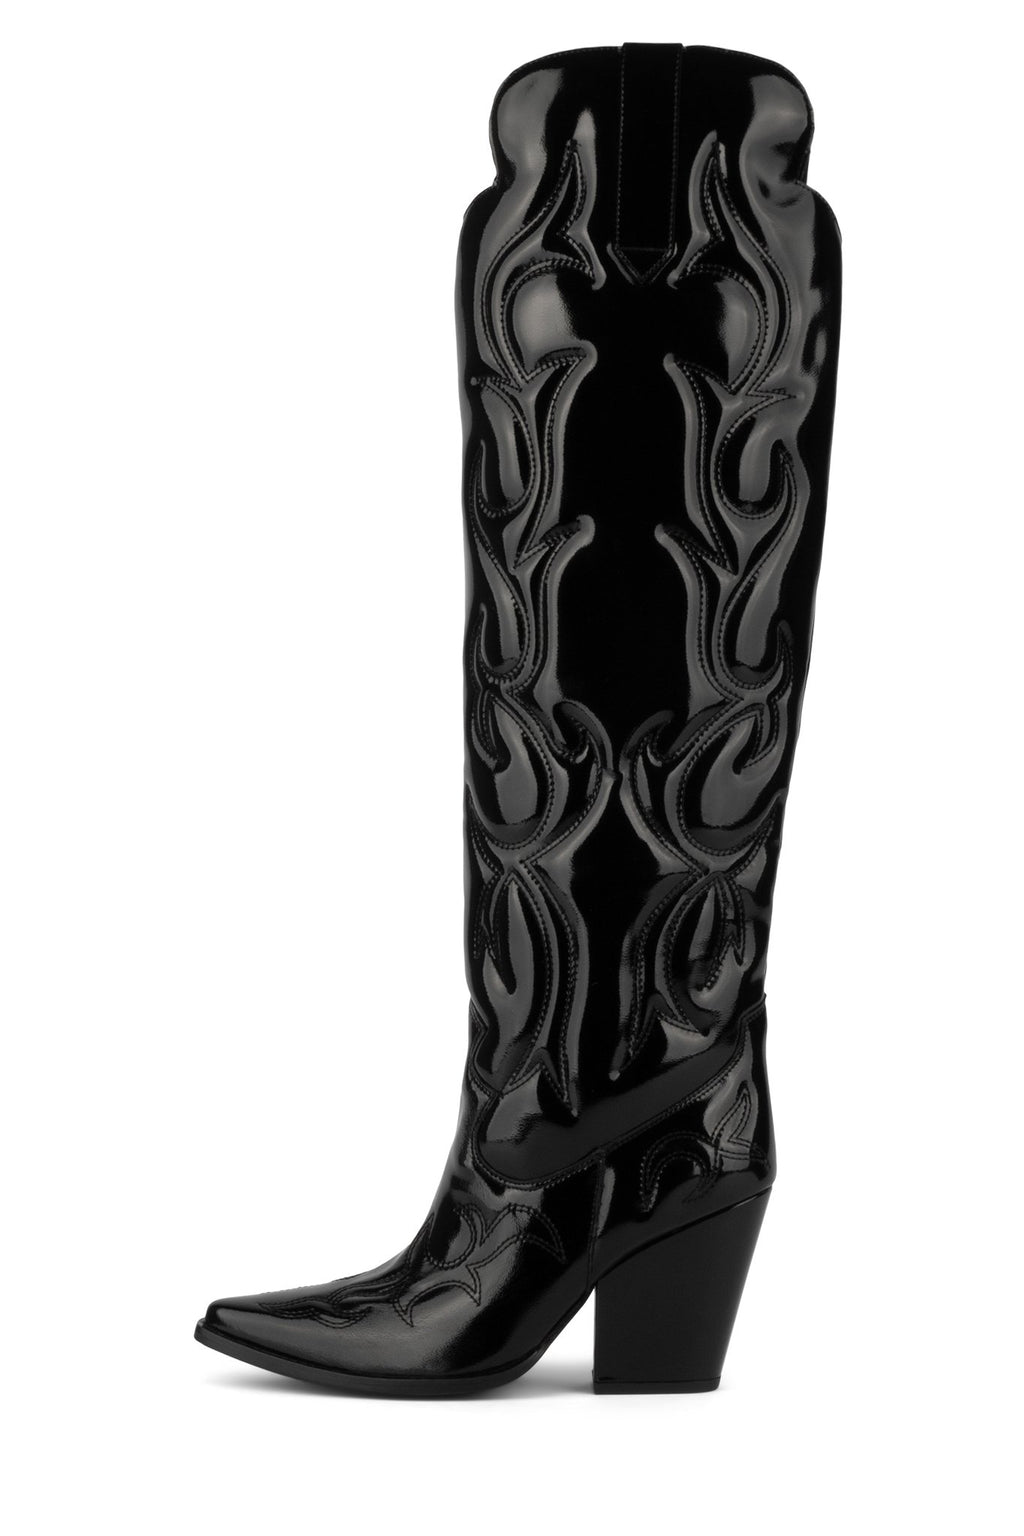 AMIGOS-LO OTK Boot YYH Black Crinkle Patent 6